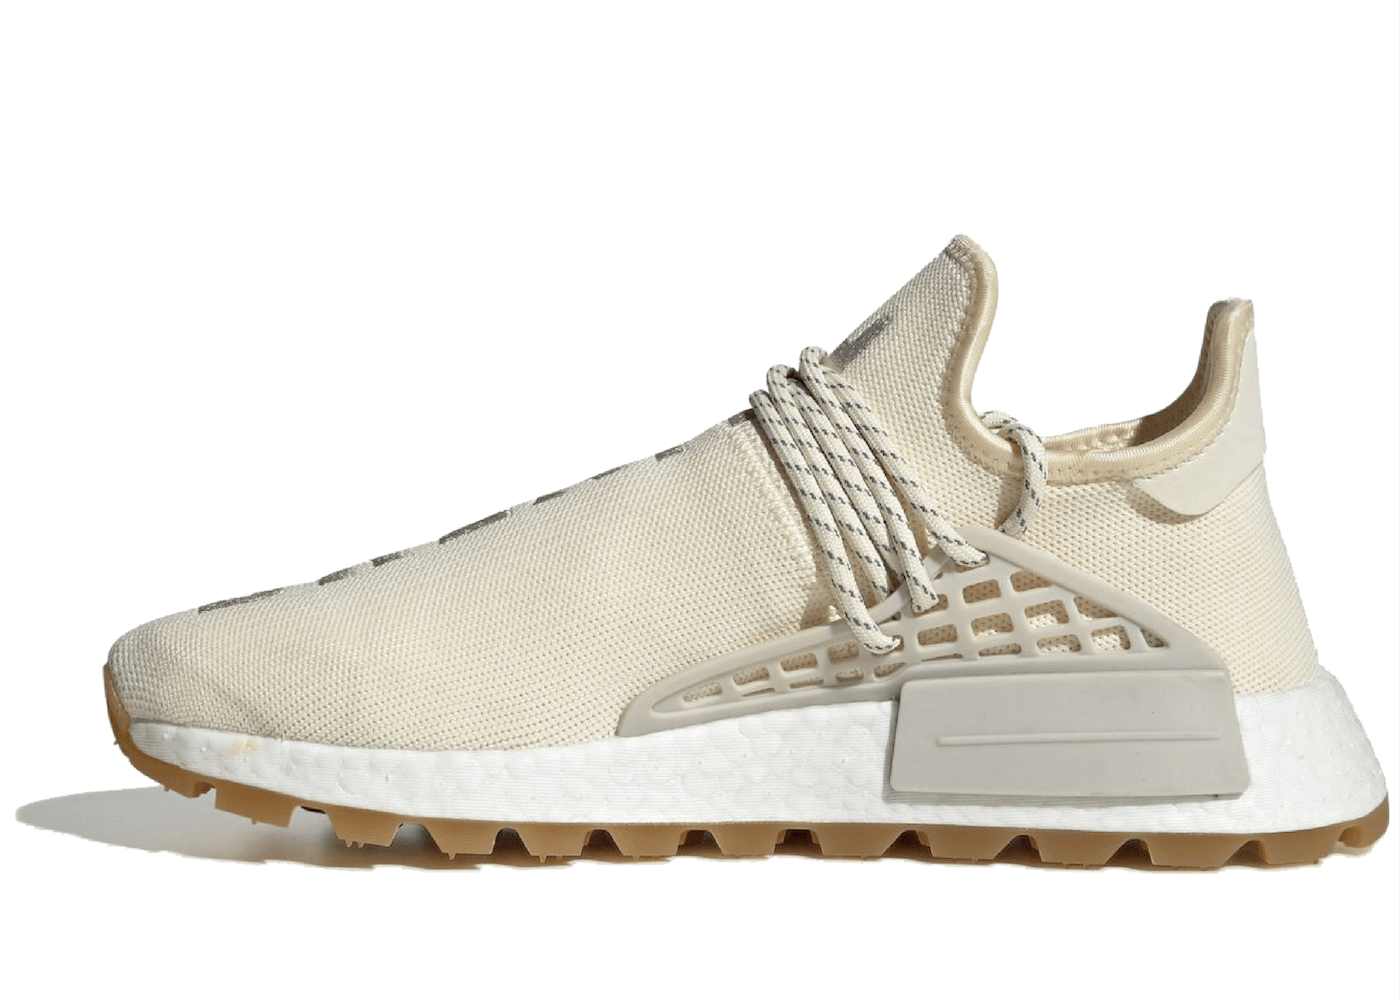 Adidas NMD Hu Trail Pharrell Cream Whiteの写真